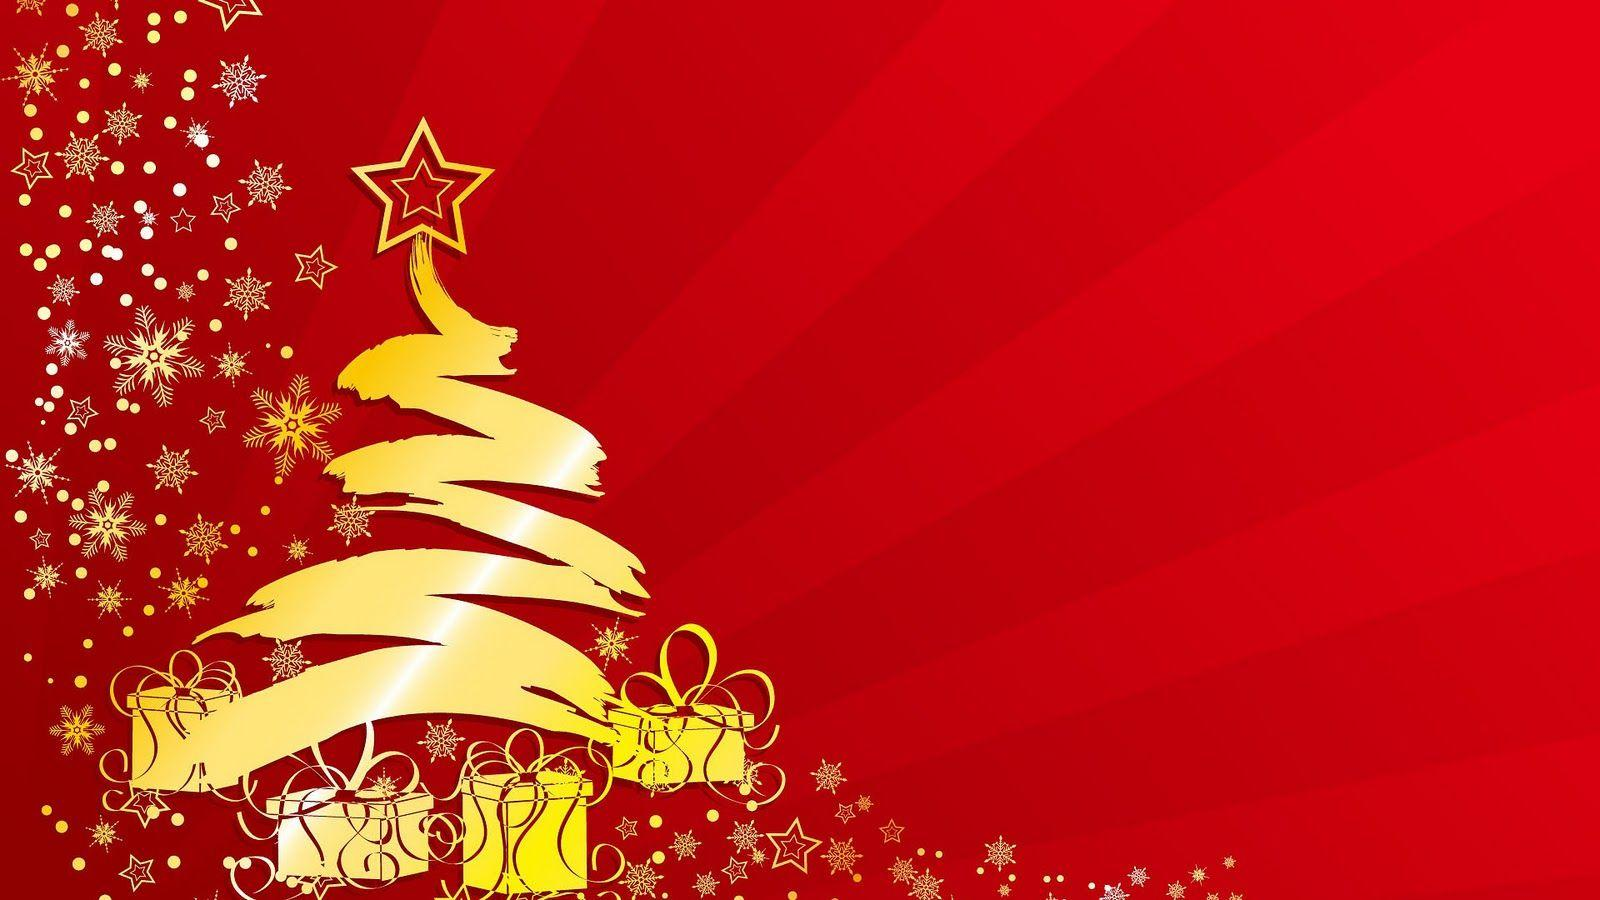 Christian Christmas Desktop Wallpapers 1600x900